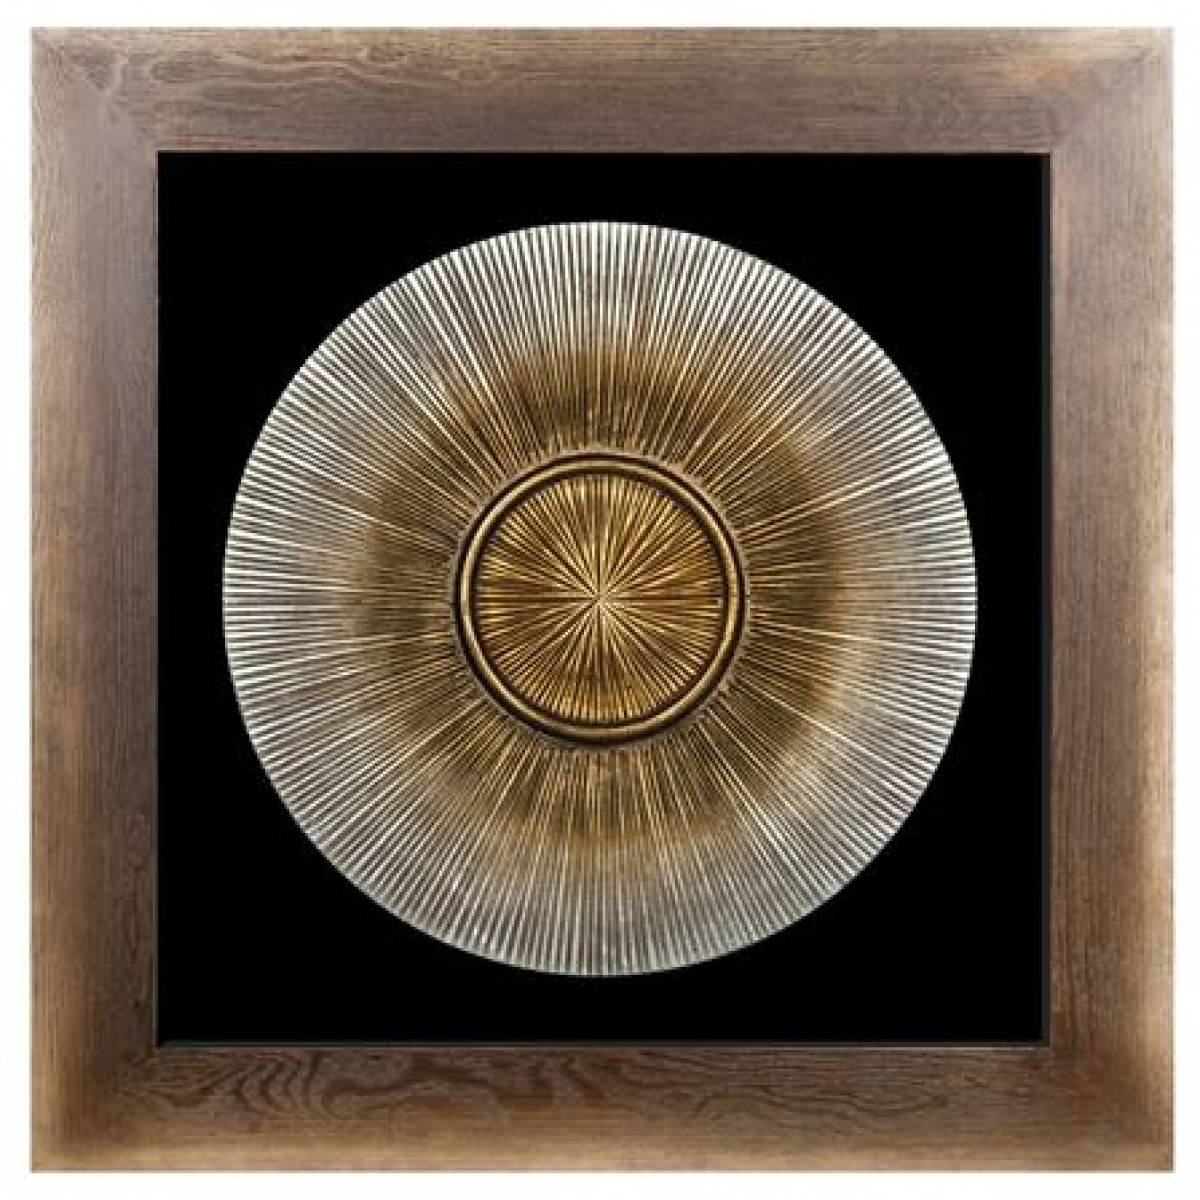 Wall Art Designs: Bronze Wall Art Sunburst Mirrored Silver Golden Intended For Best And Newest Bronze Metal Wall Art (View 17 of 20)